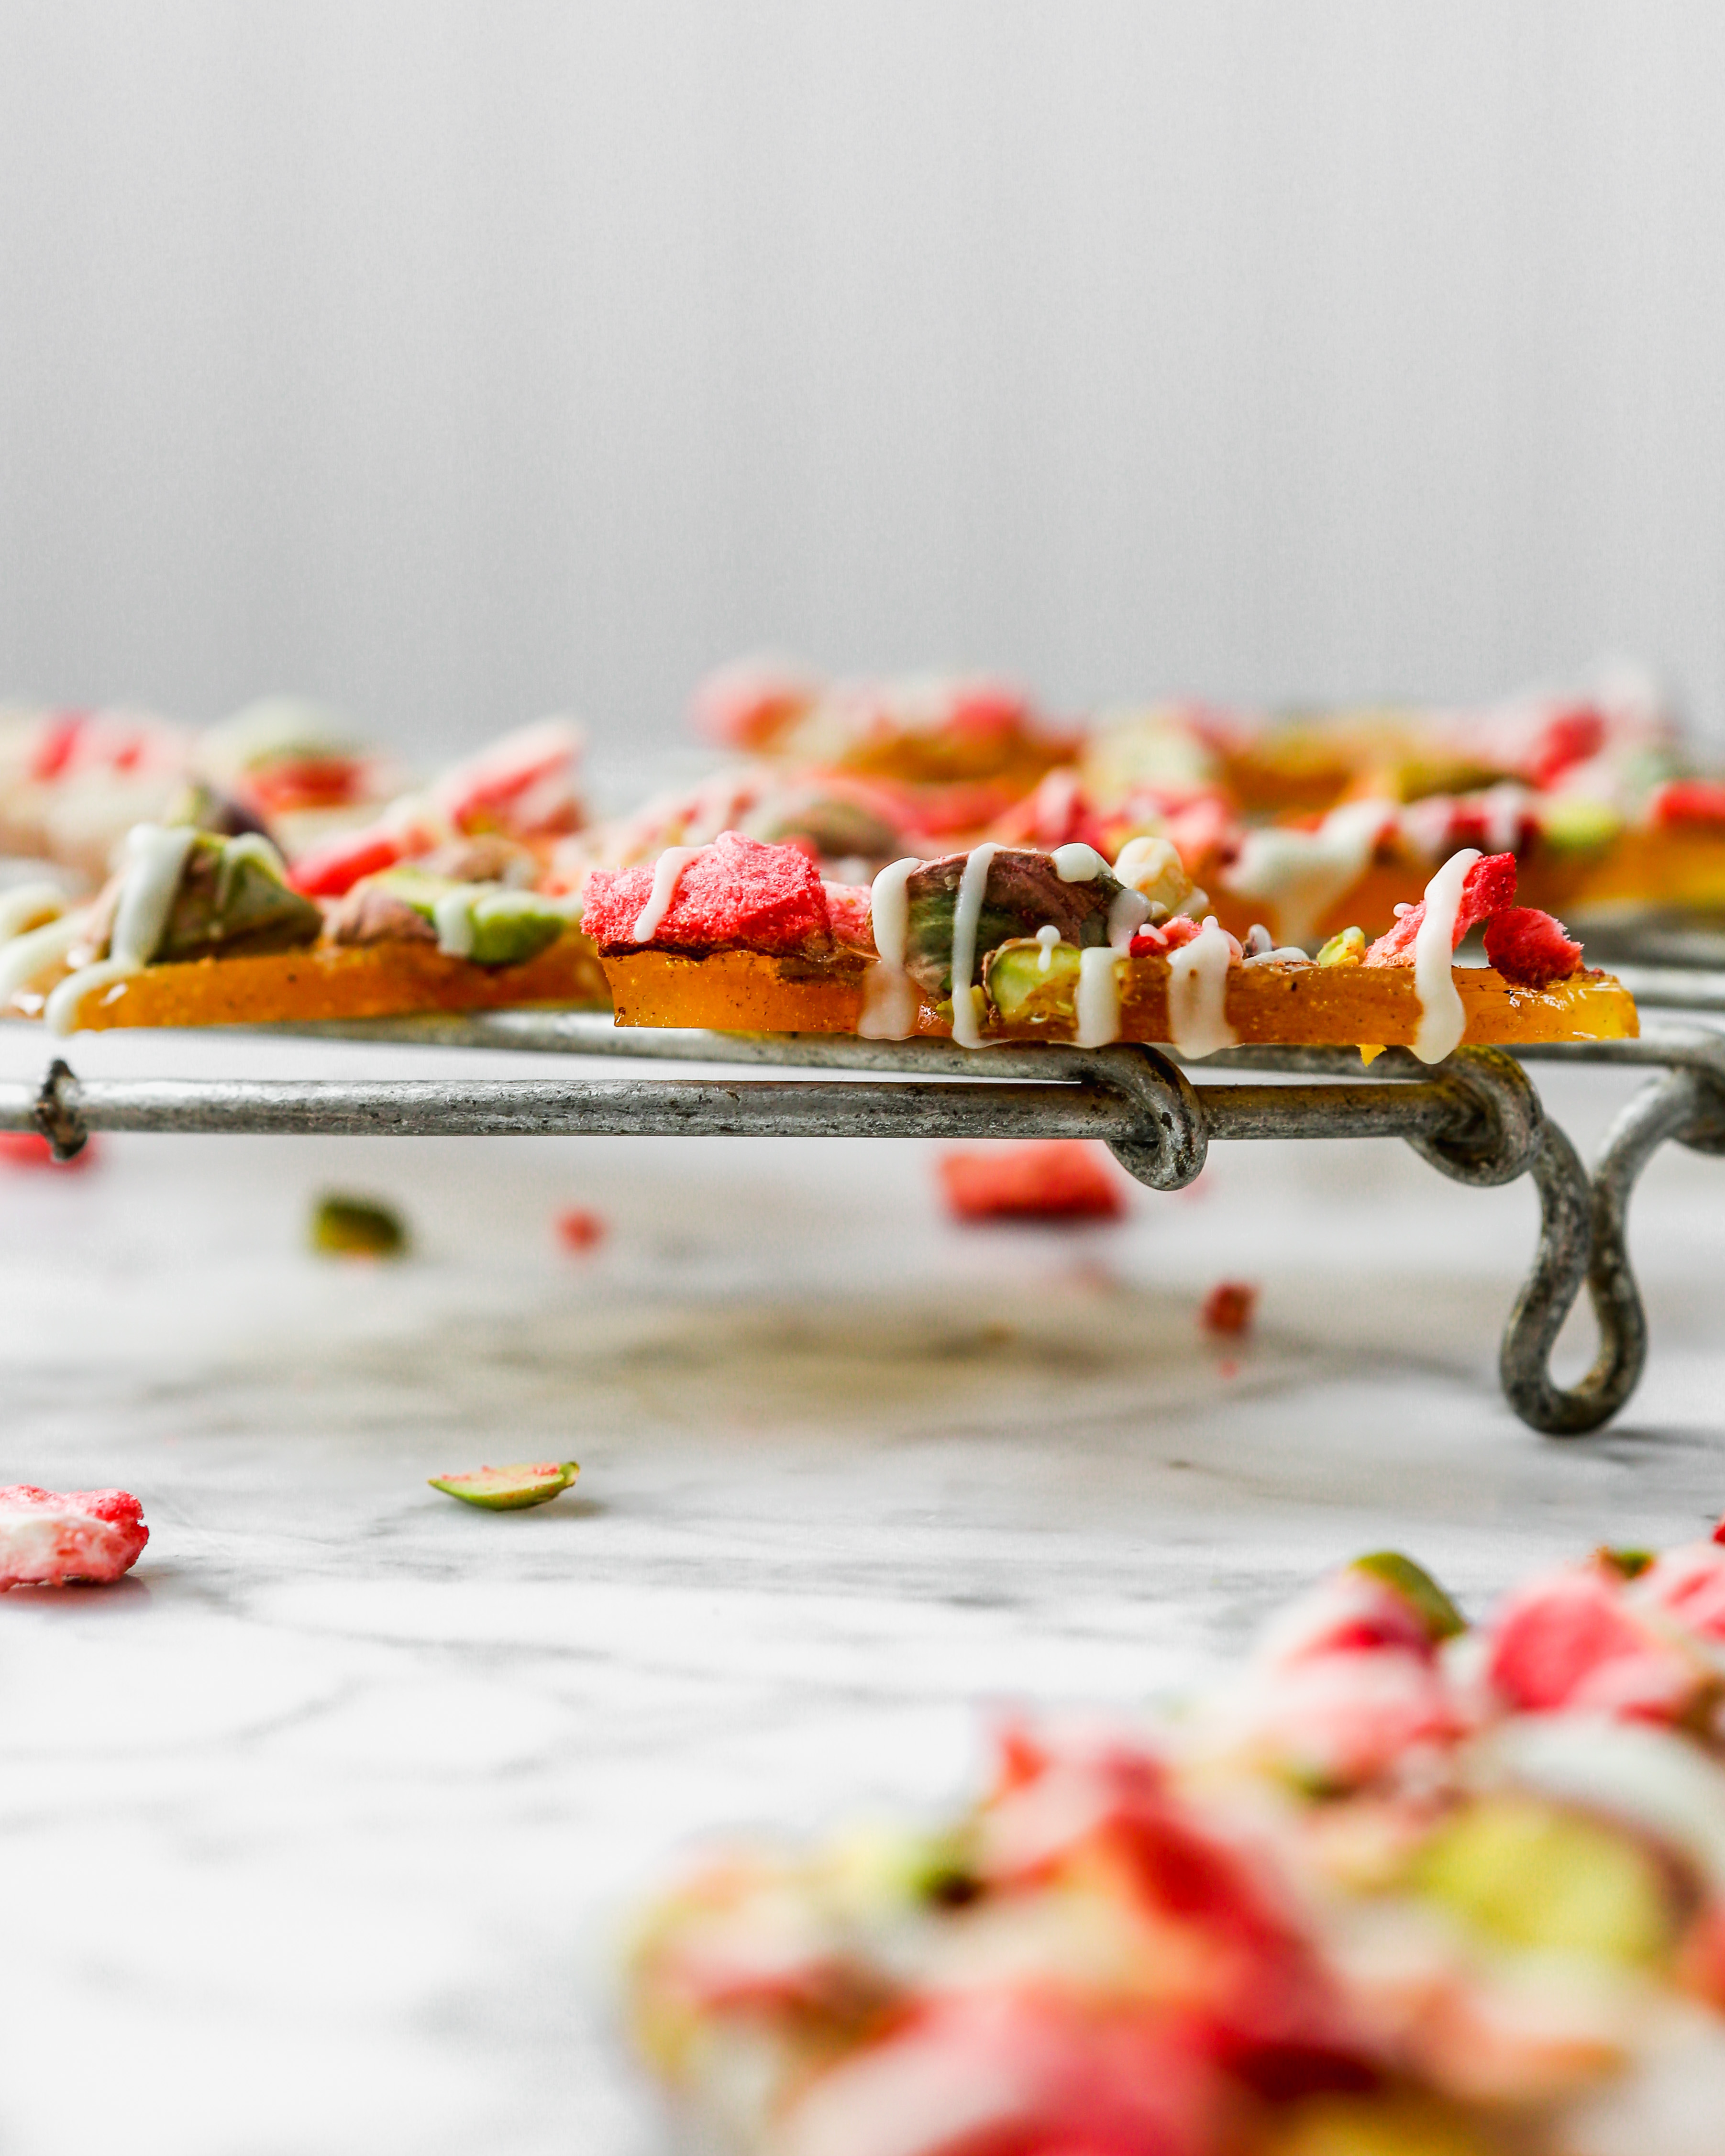 Pistachio, Strawberry, White Chocolate & Cardamom Brittle layered on a wire rack on a marble table | Zestful Kitchen